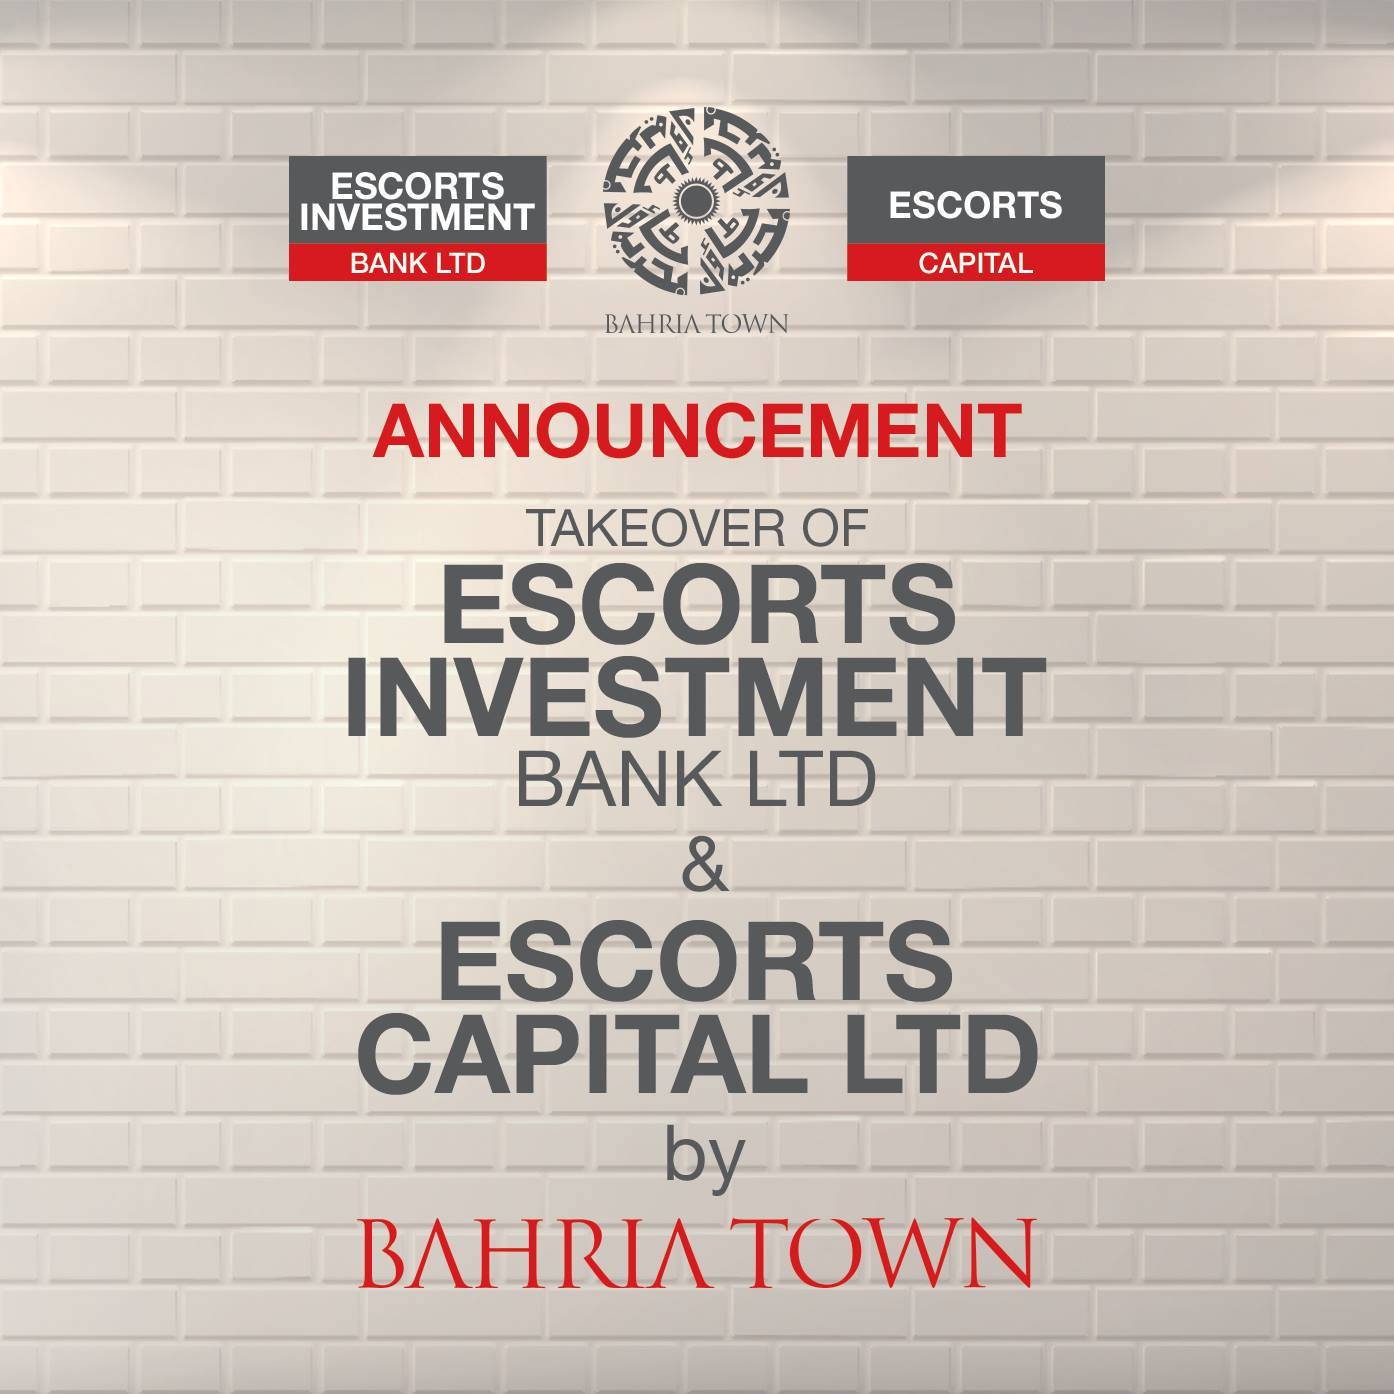 02 Bahria Town enters into Financial Services Sector